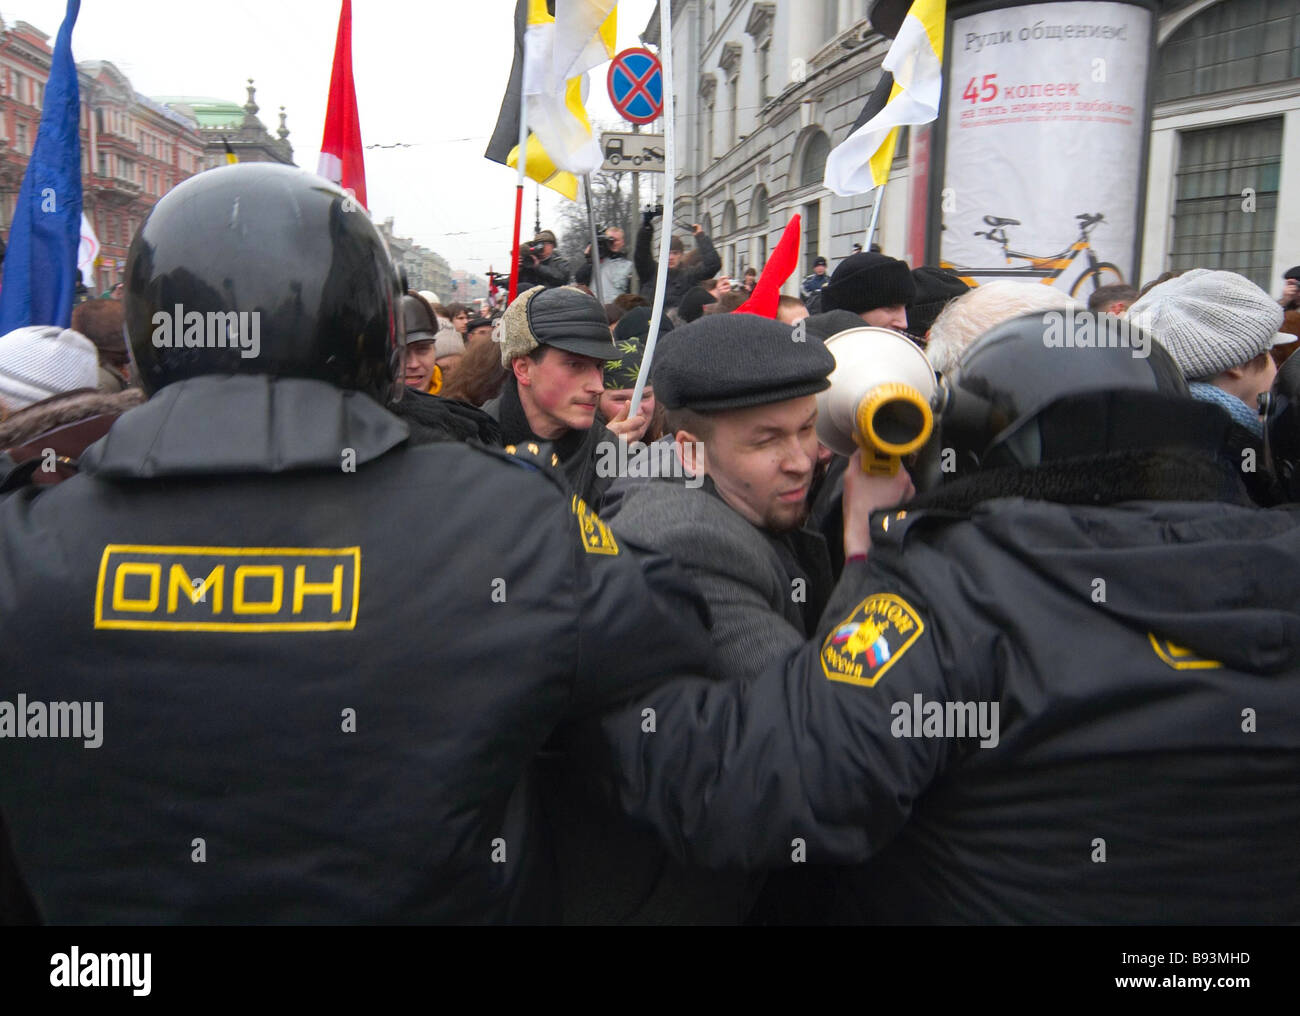 Clashes of special police with participants in the unauthorized opposition action March of the disagreeing in St - Stock Image